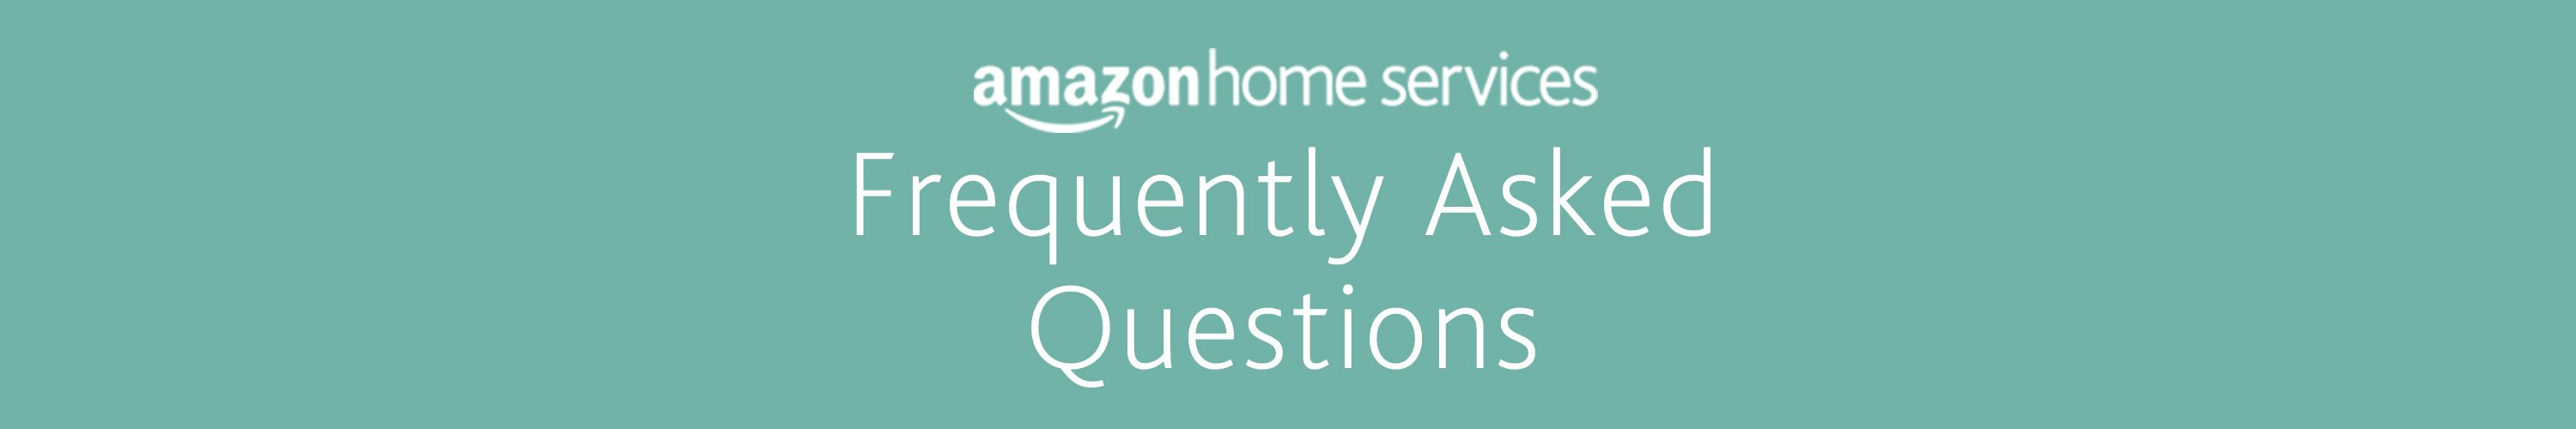 Amazon Home Services Help & FAQs